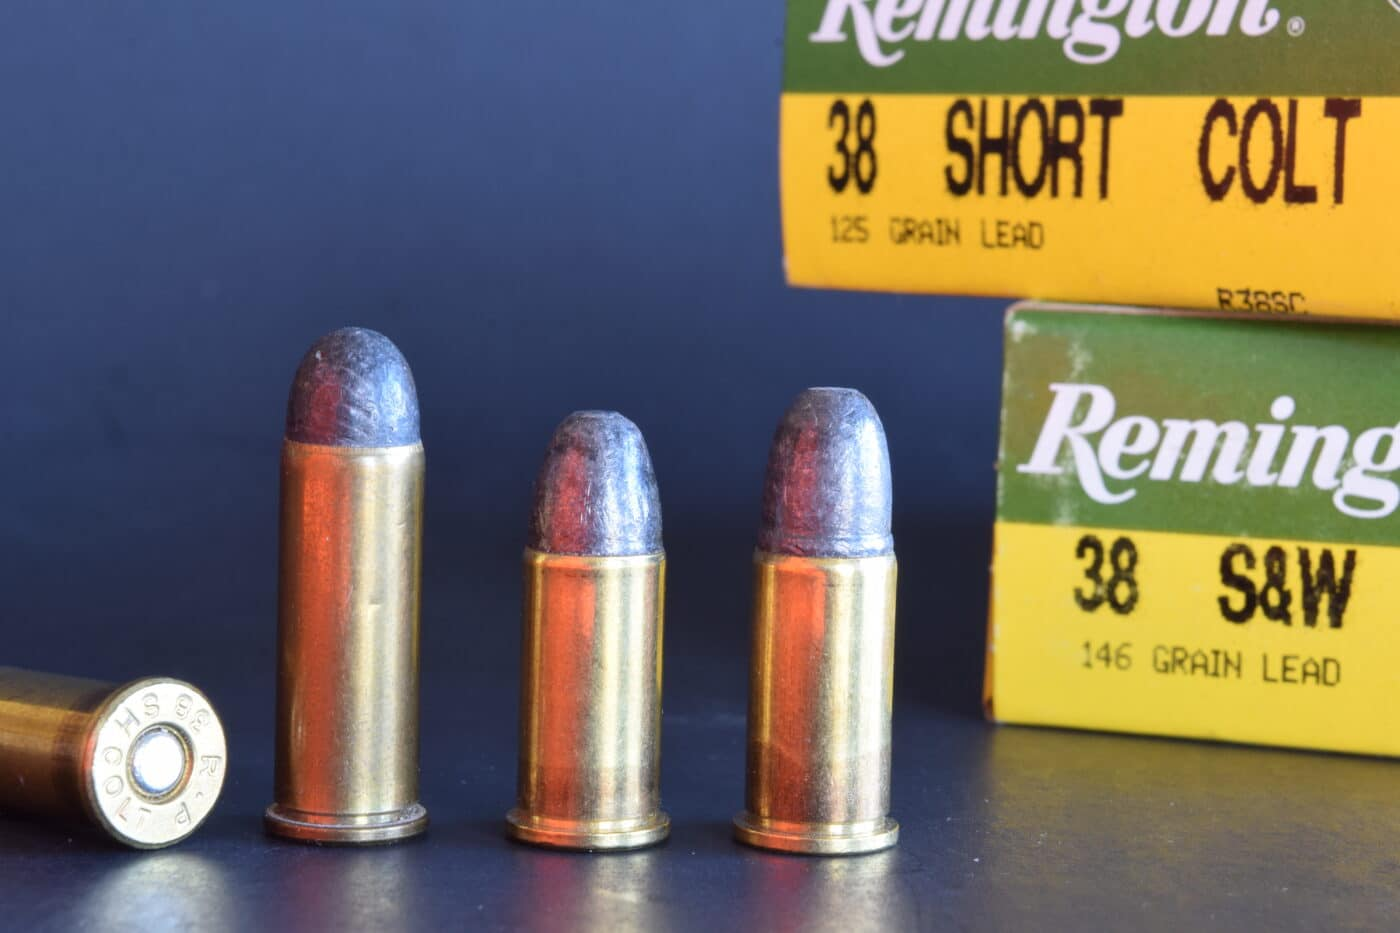 .38 cartridges for the military